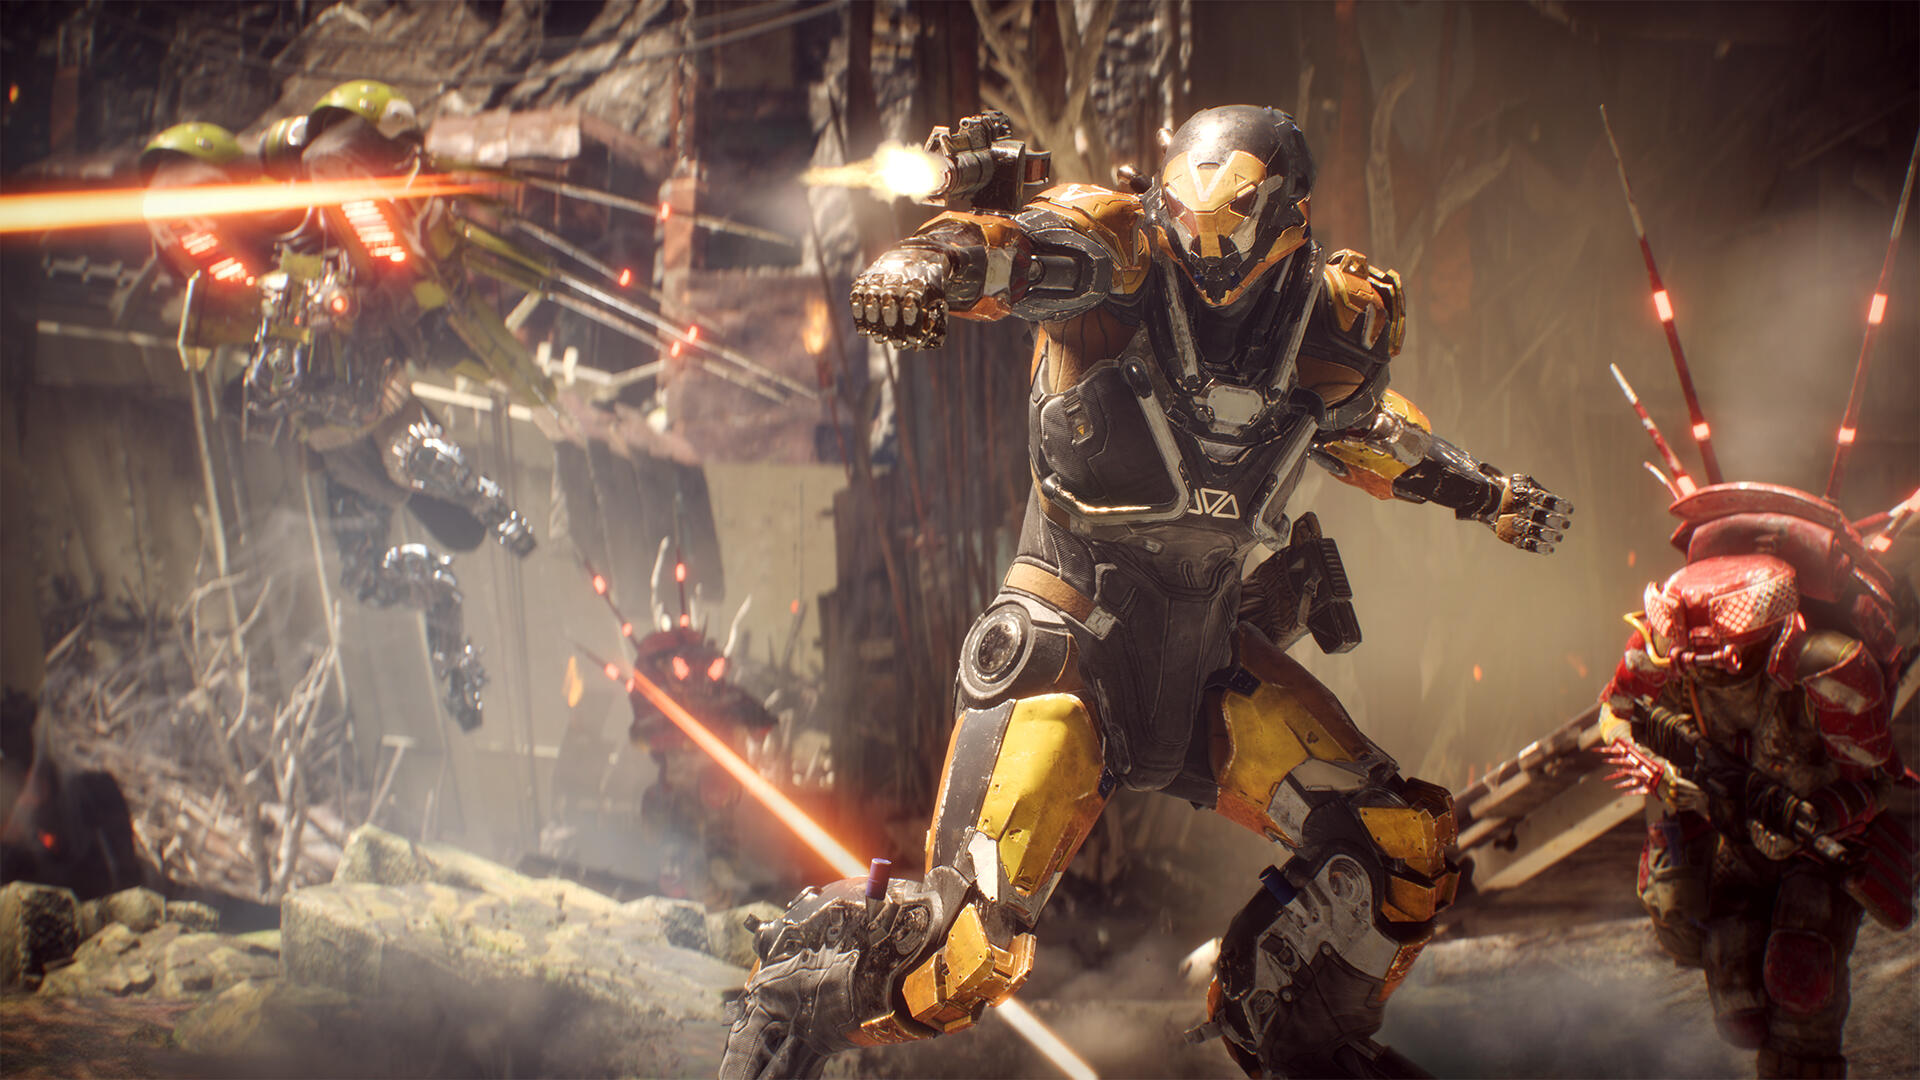 Anthem's Cataclysm is a Storm of Negative Opinions During